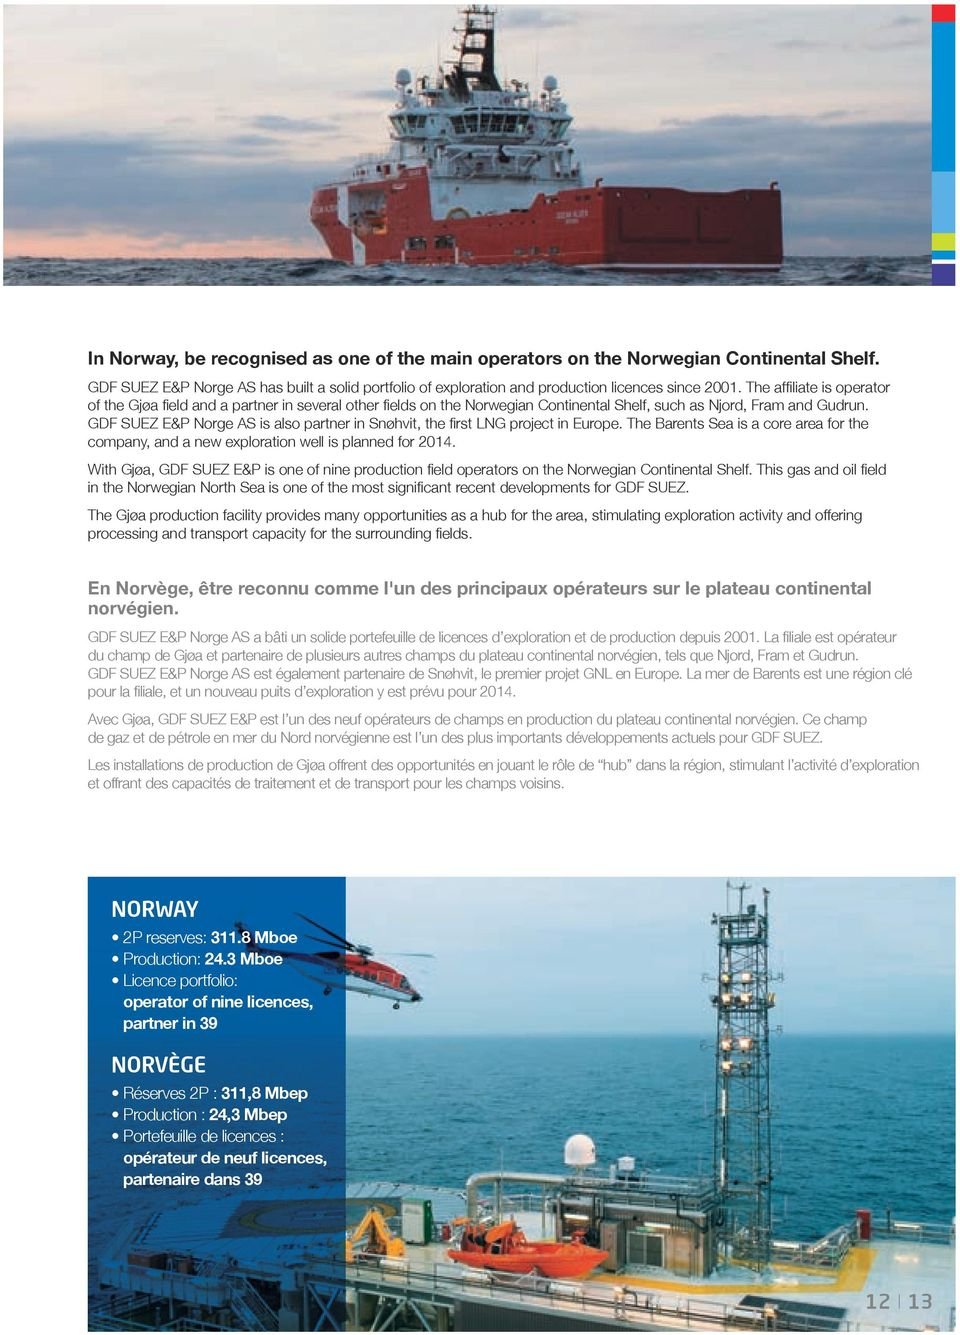 GDF SUEZ E&P Norge AS is also partner in Snøhvit, the first LNG project in Europe. The Barents Sea is a core area for the company, and a new exploration well is planned for 2014.